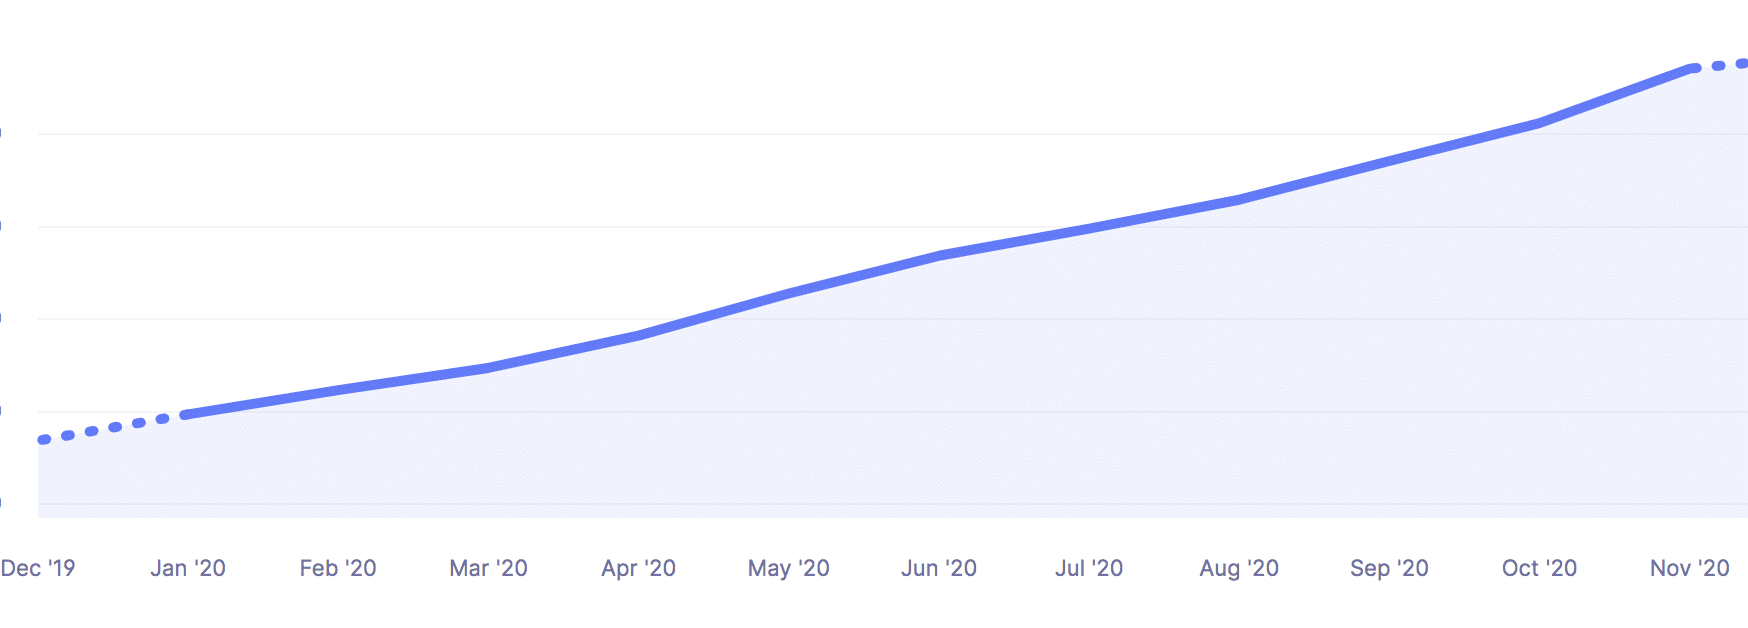 Kinsta's revenue growth in 2020